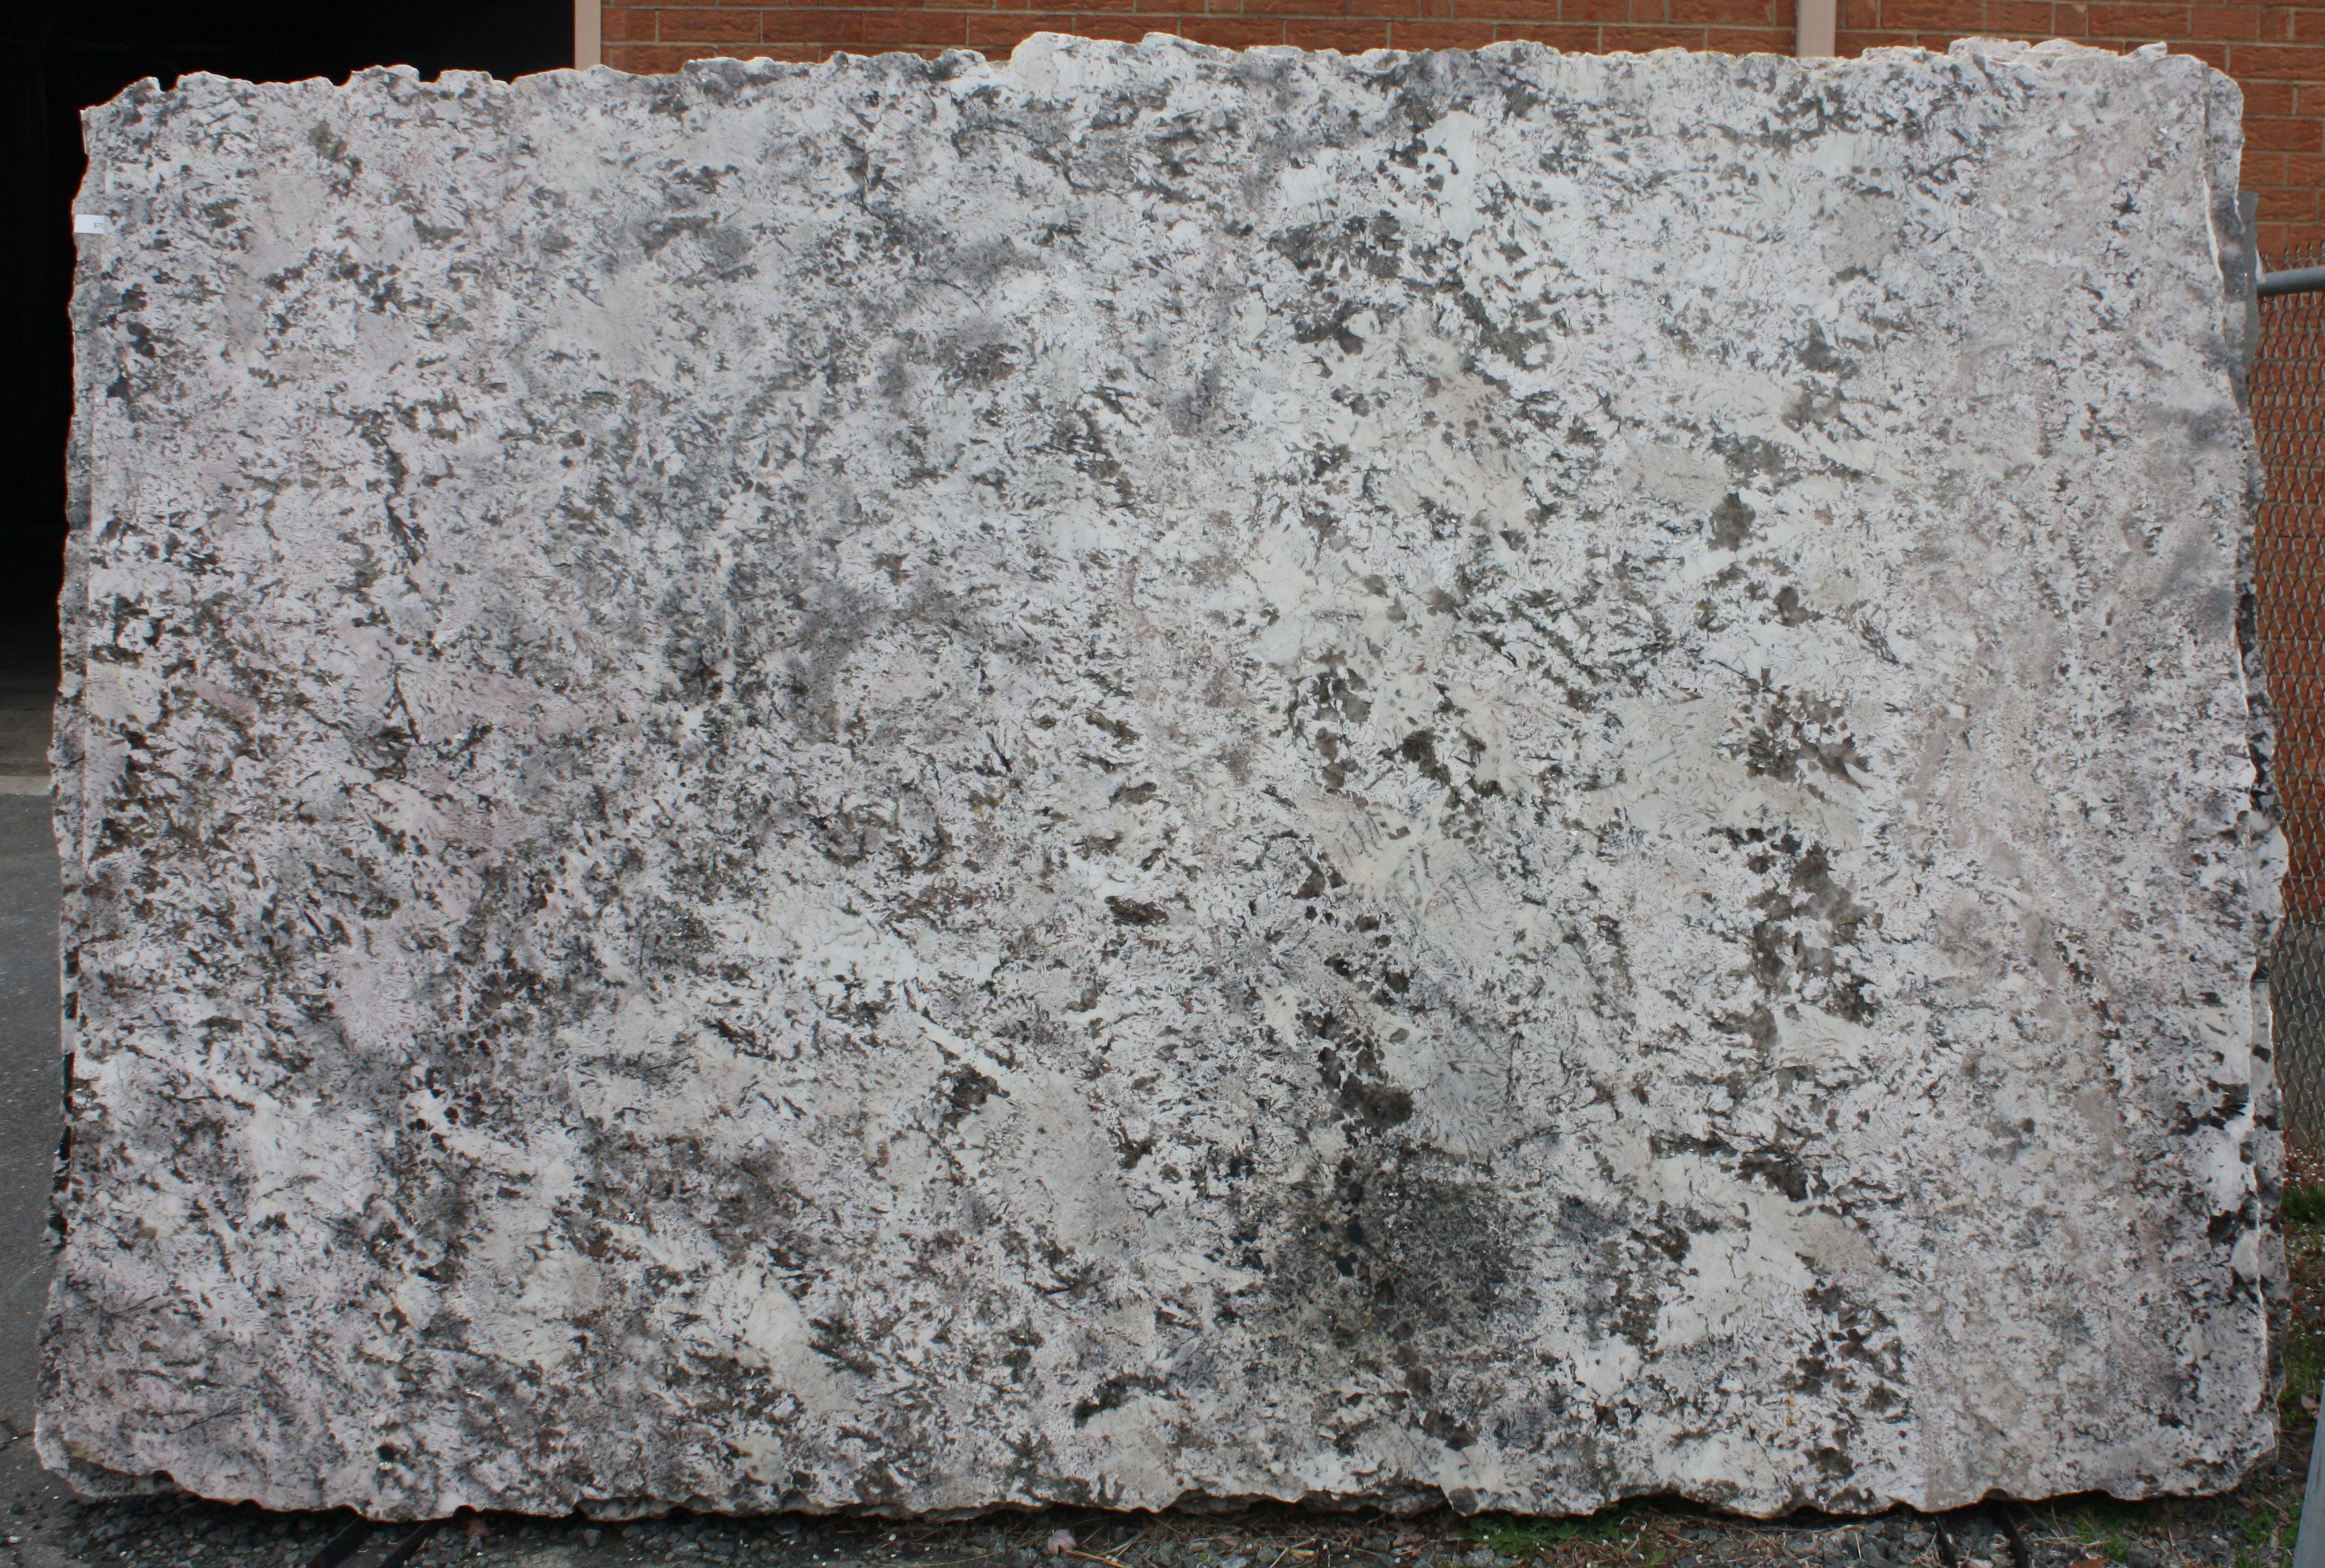 Brazilian Diamond Granite Granite Countertops Granite Quartz Countertops